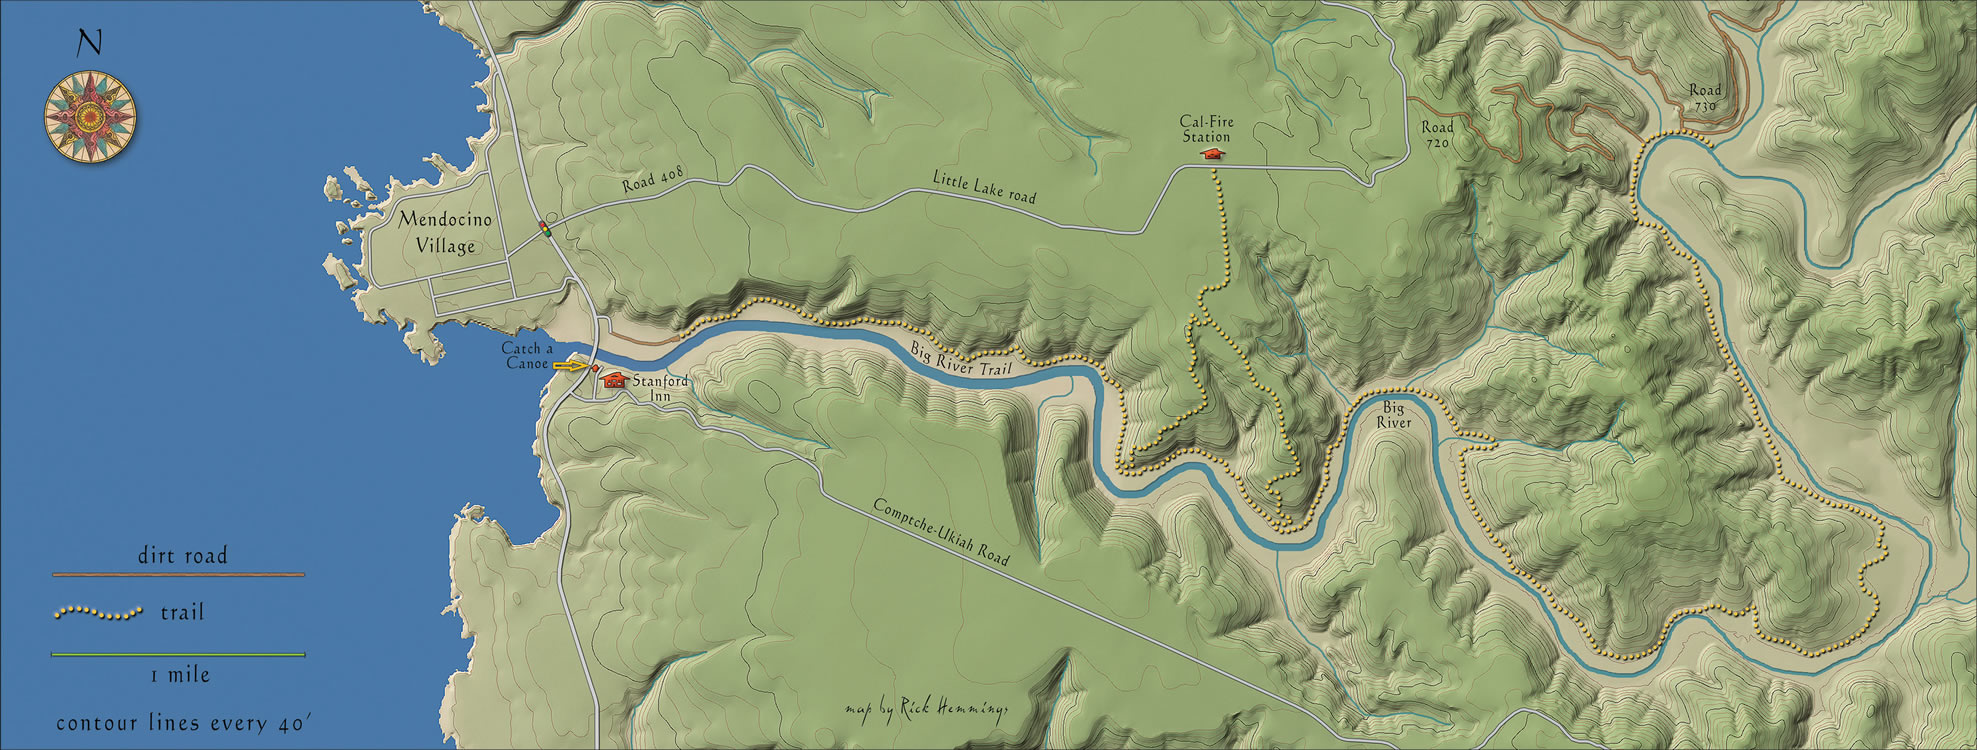 big river mendocino terrain map